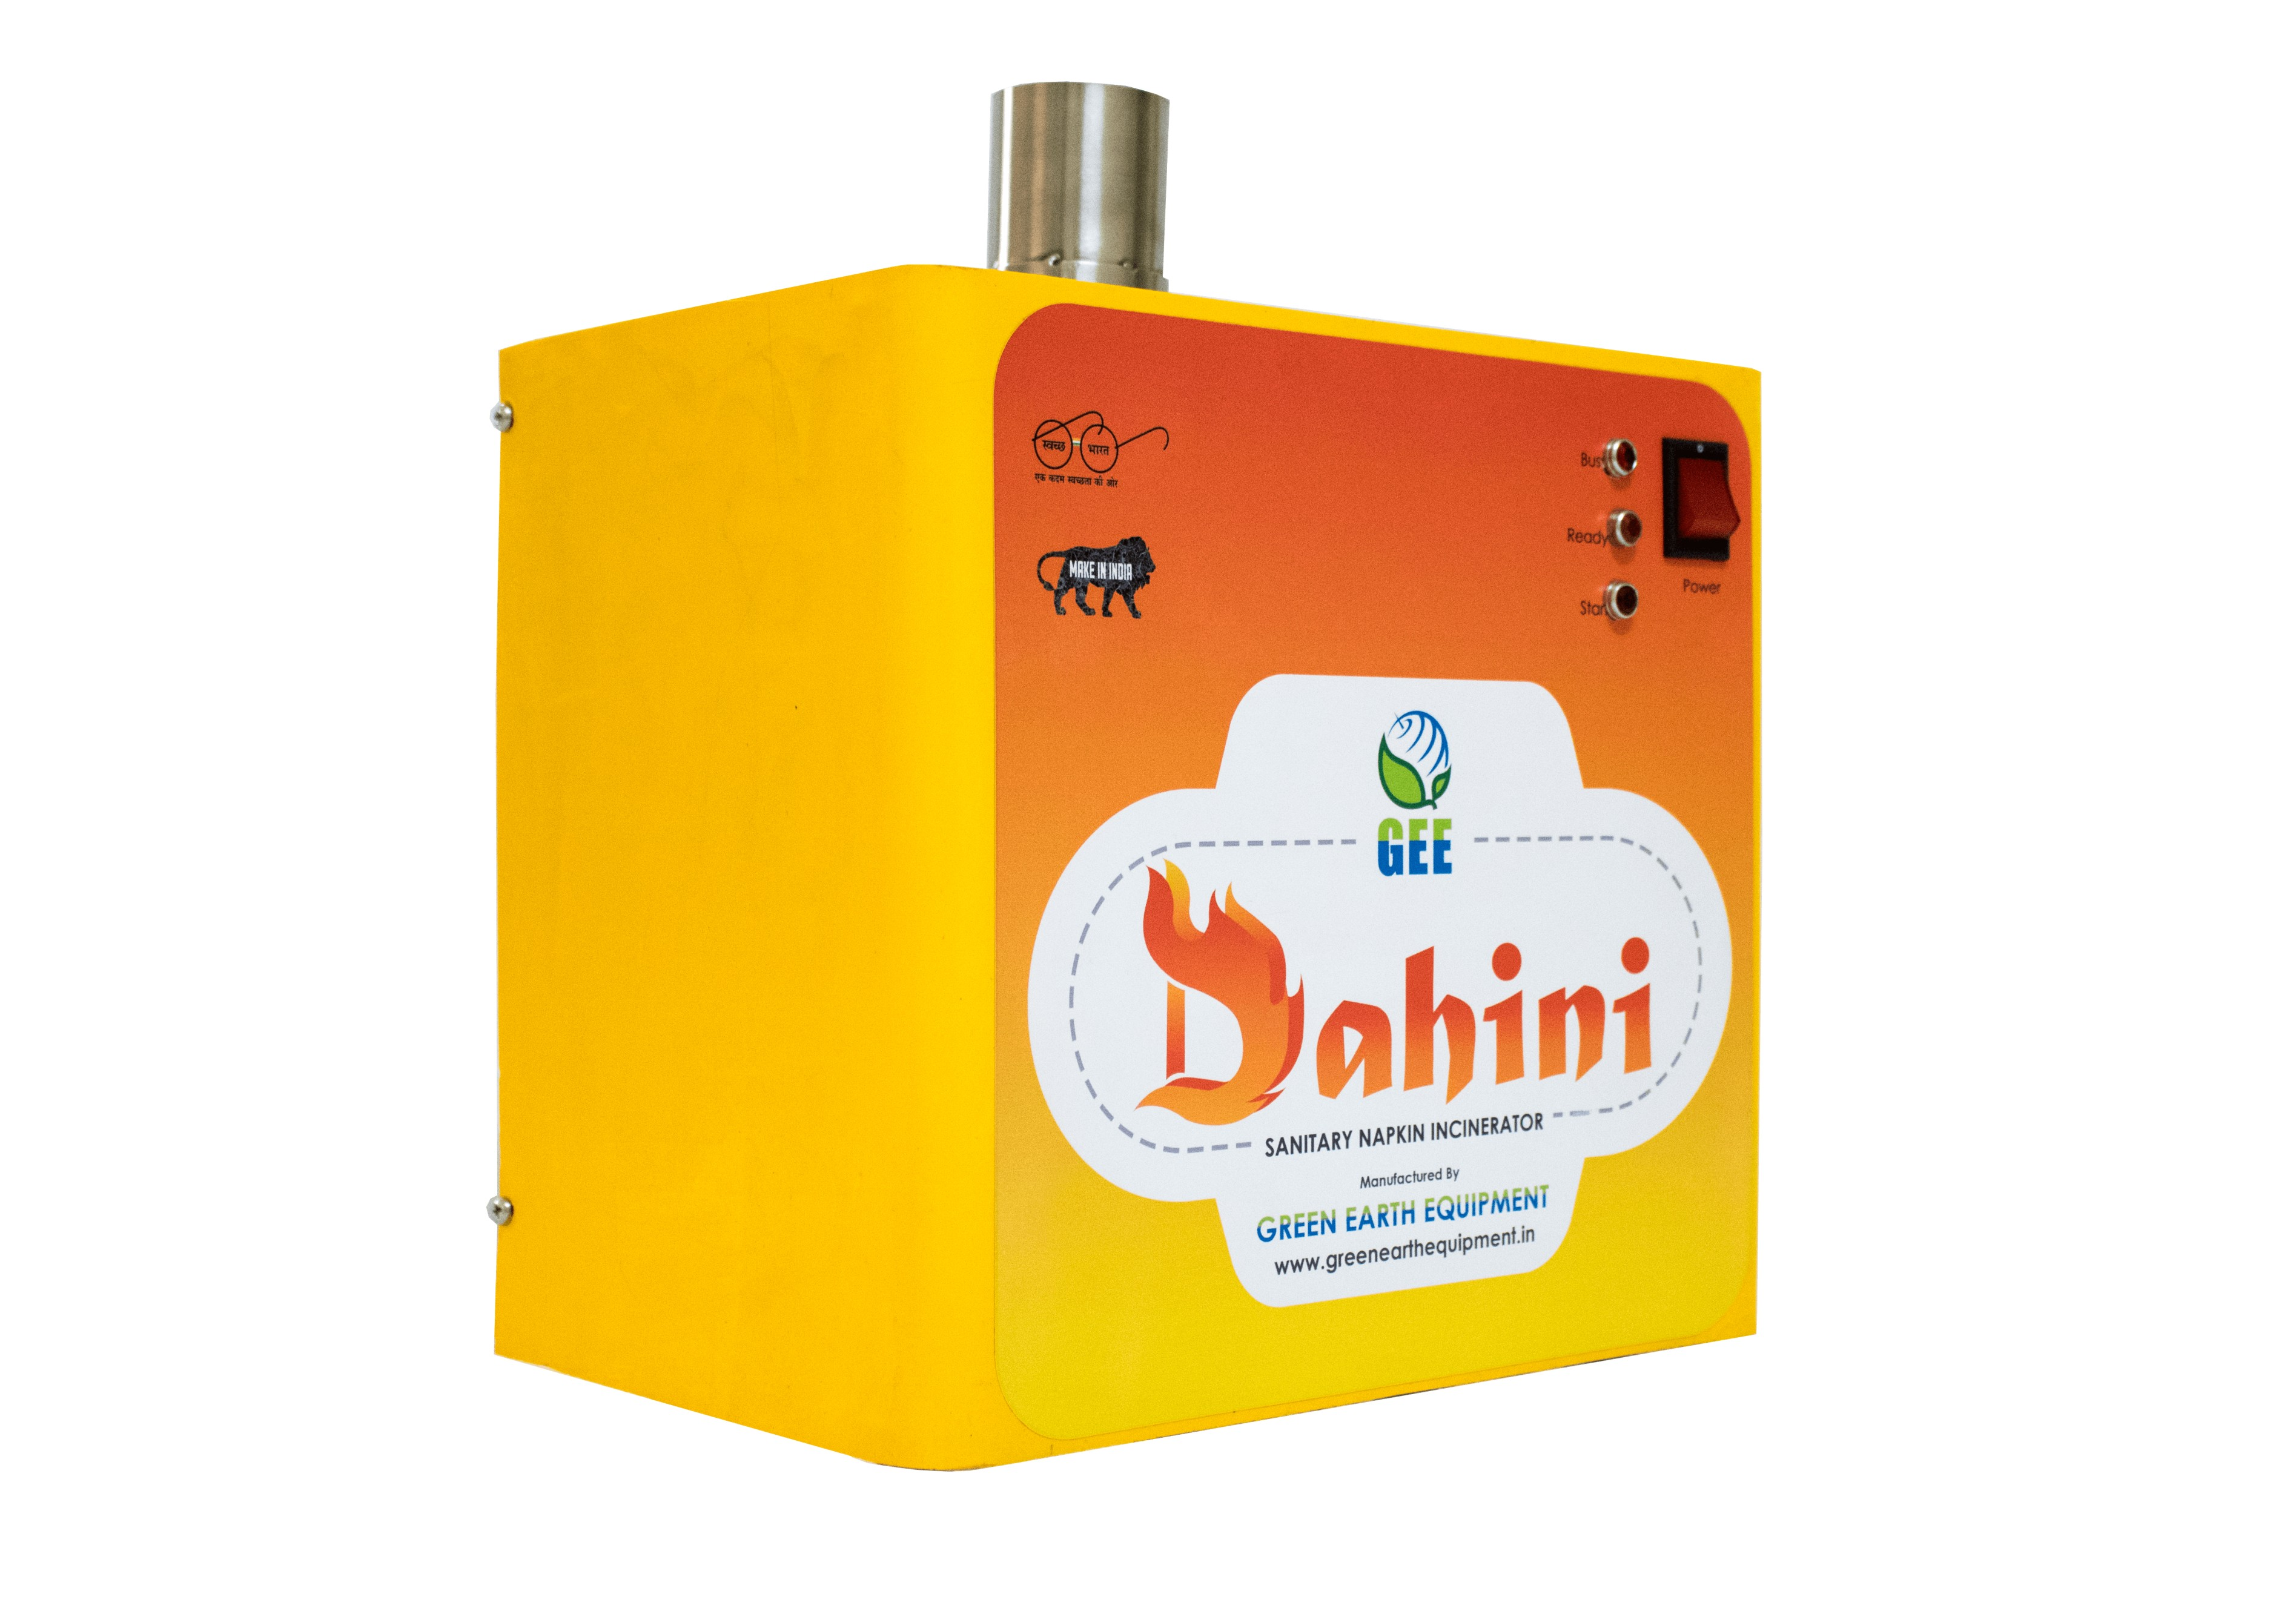 Dahini - A Sustainable Solution to Sanitary Waste